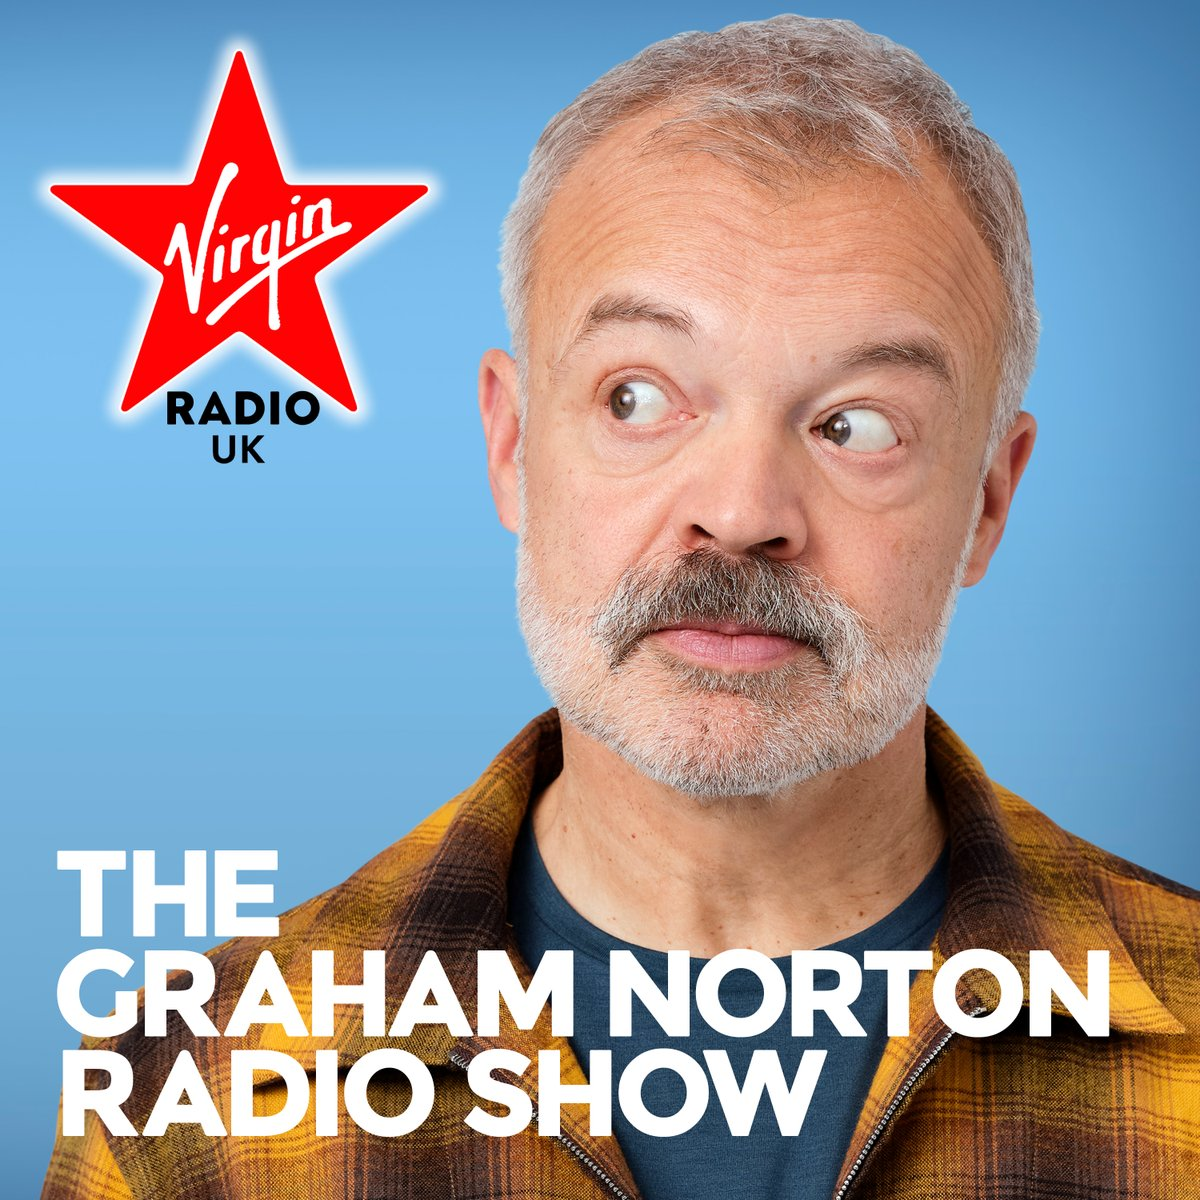 Did you miss #TheGrahamNortonRadioShow this morning?  Fret ye not! You can listen back in full here 👇   Plus, The Graham Norton Podcast launches on Monday 👇   Graham's back tomorrow morning from 9:30 too!